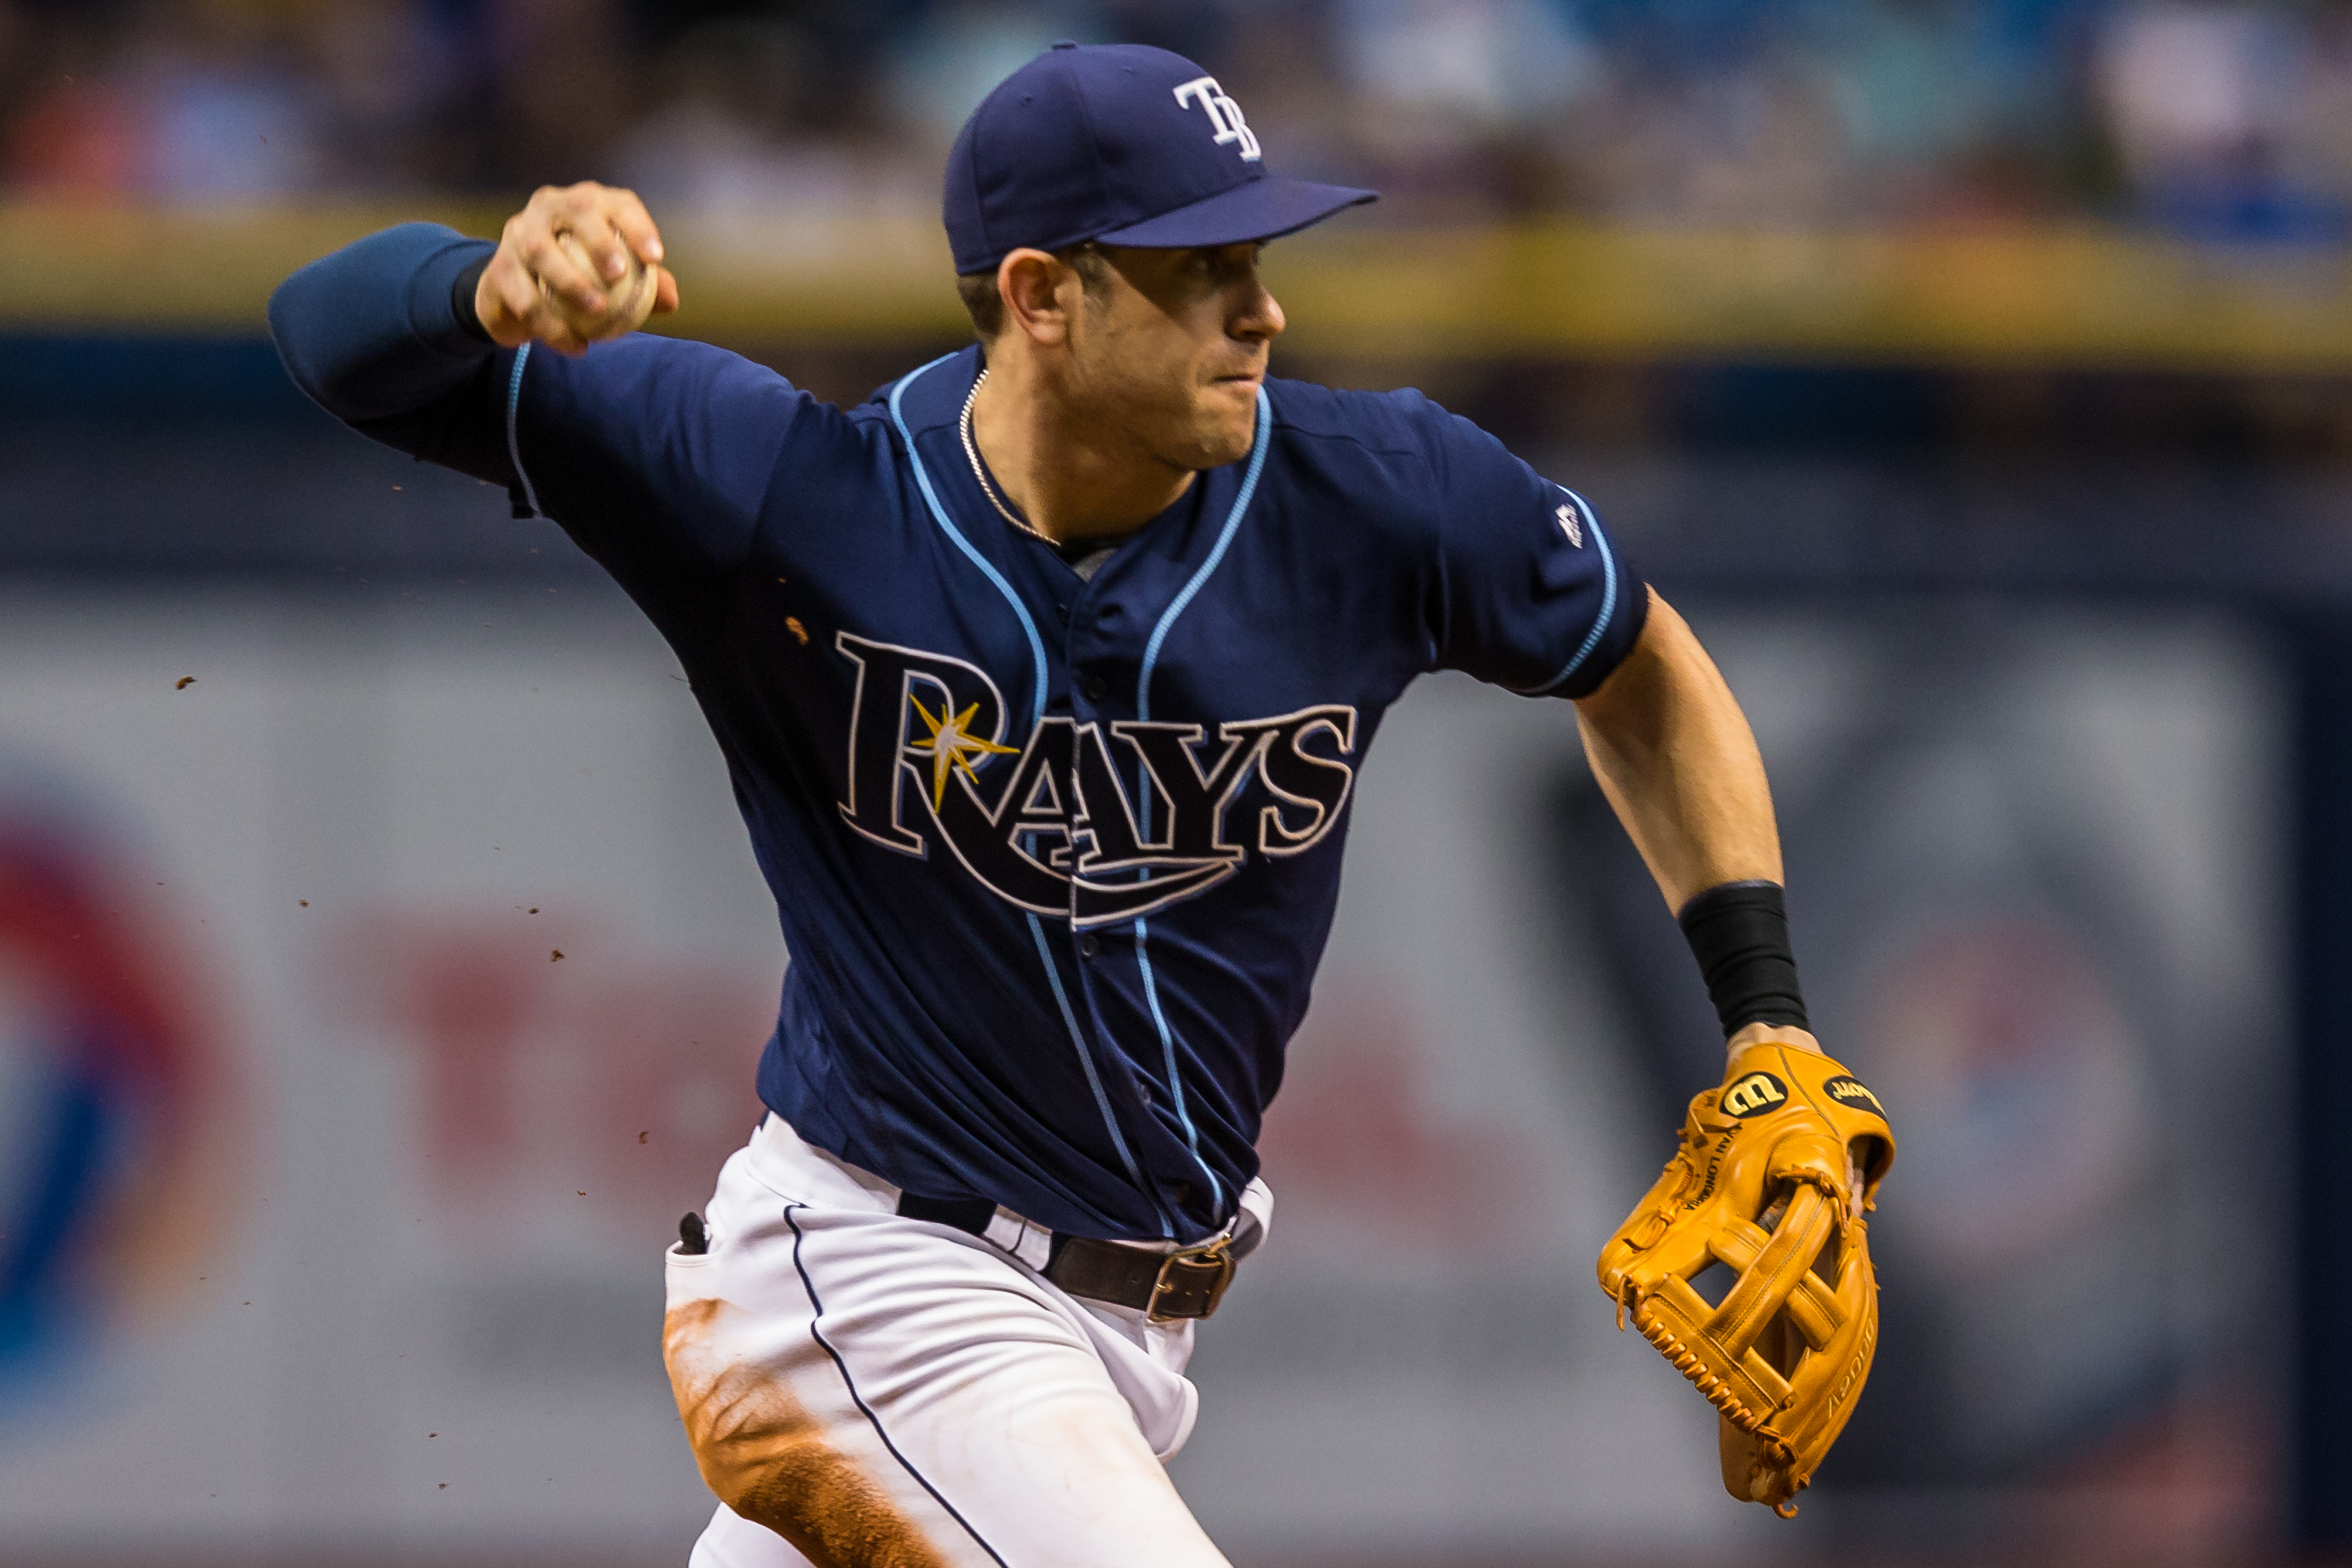 Rays' series against the Chicago Cubs is worth circling./TRAVIS PENDERGRASS